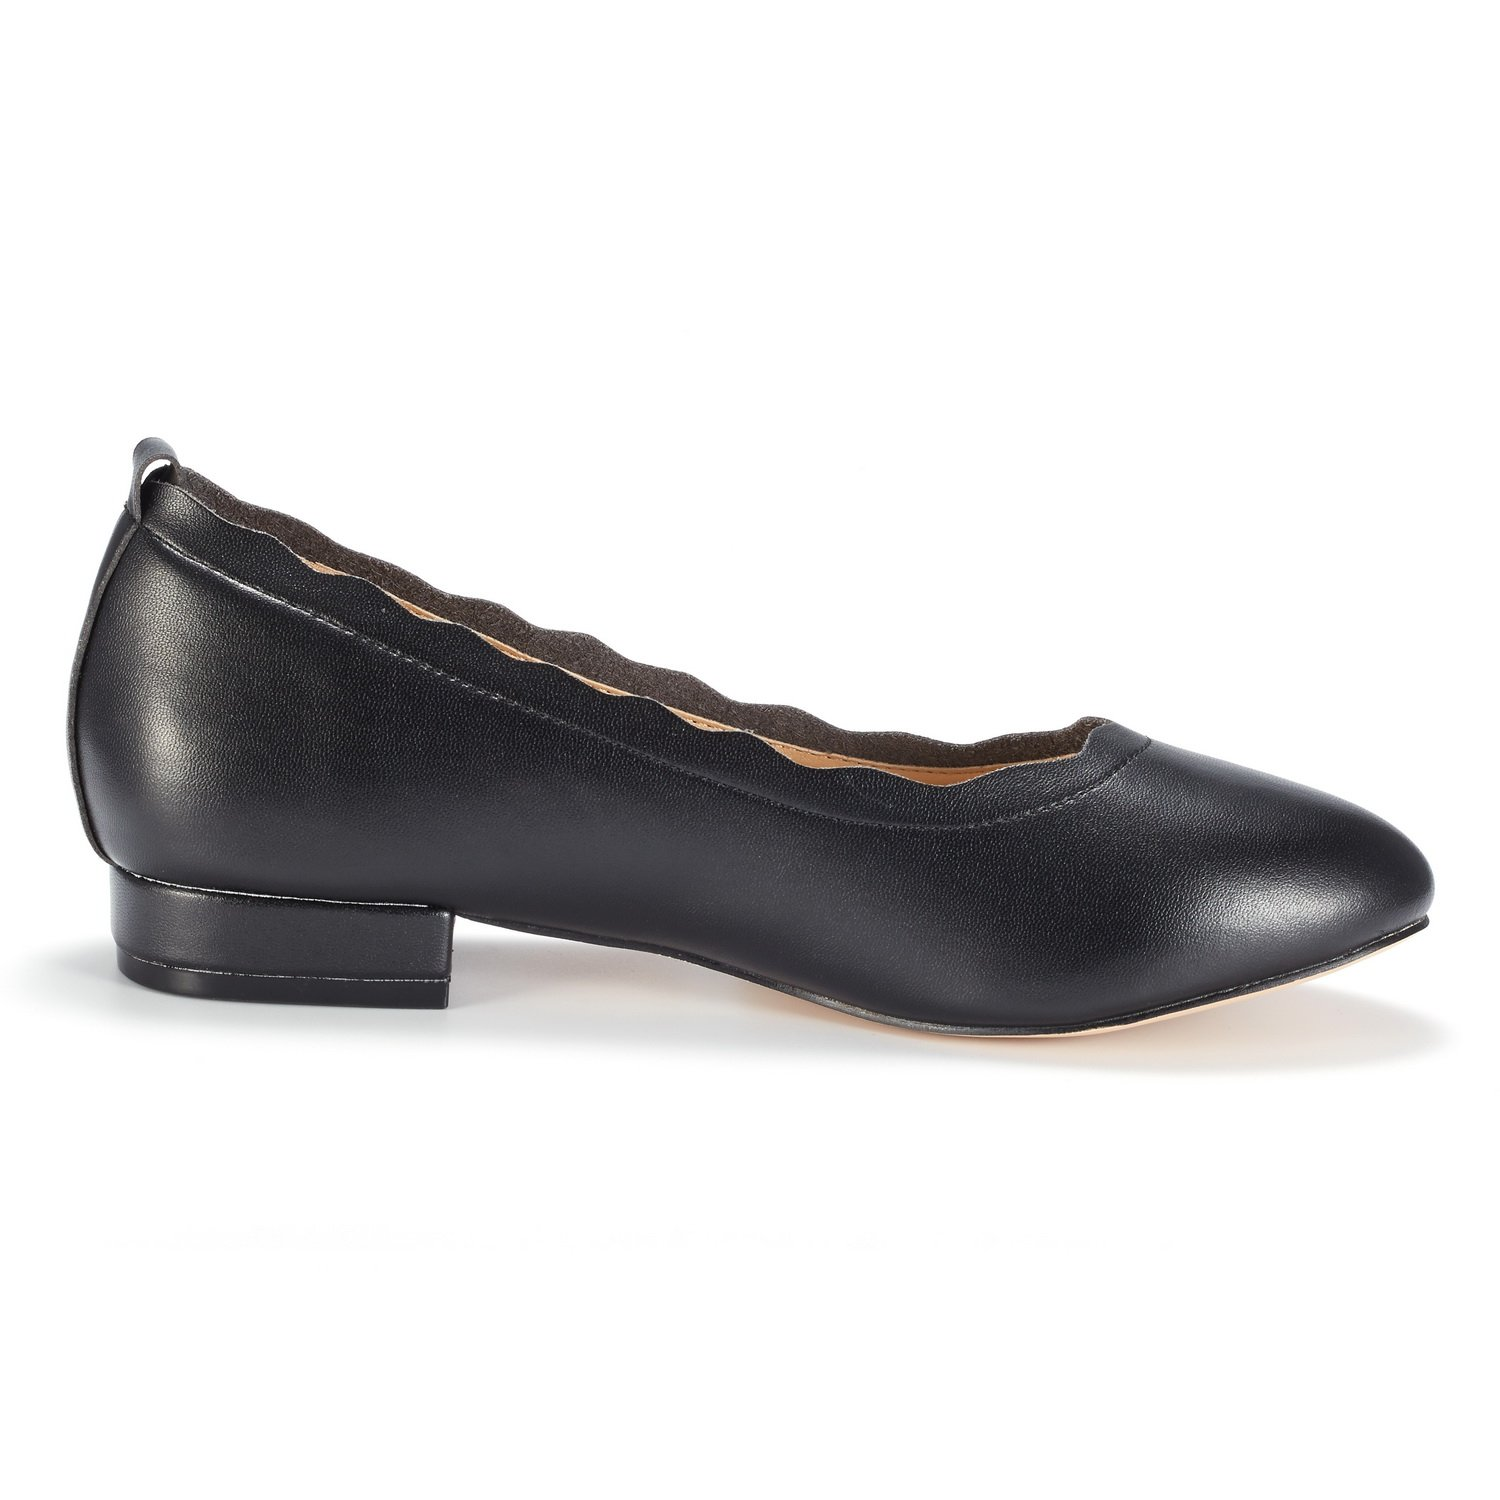 DREAM PAIRS Women's Sole_Elle Black/PU Fashion Low Stacked Slip On Flats Shoes Size 8.5 M US by DREAM PAIRS (Image #2)